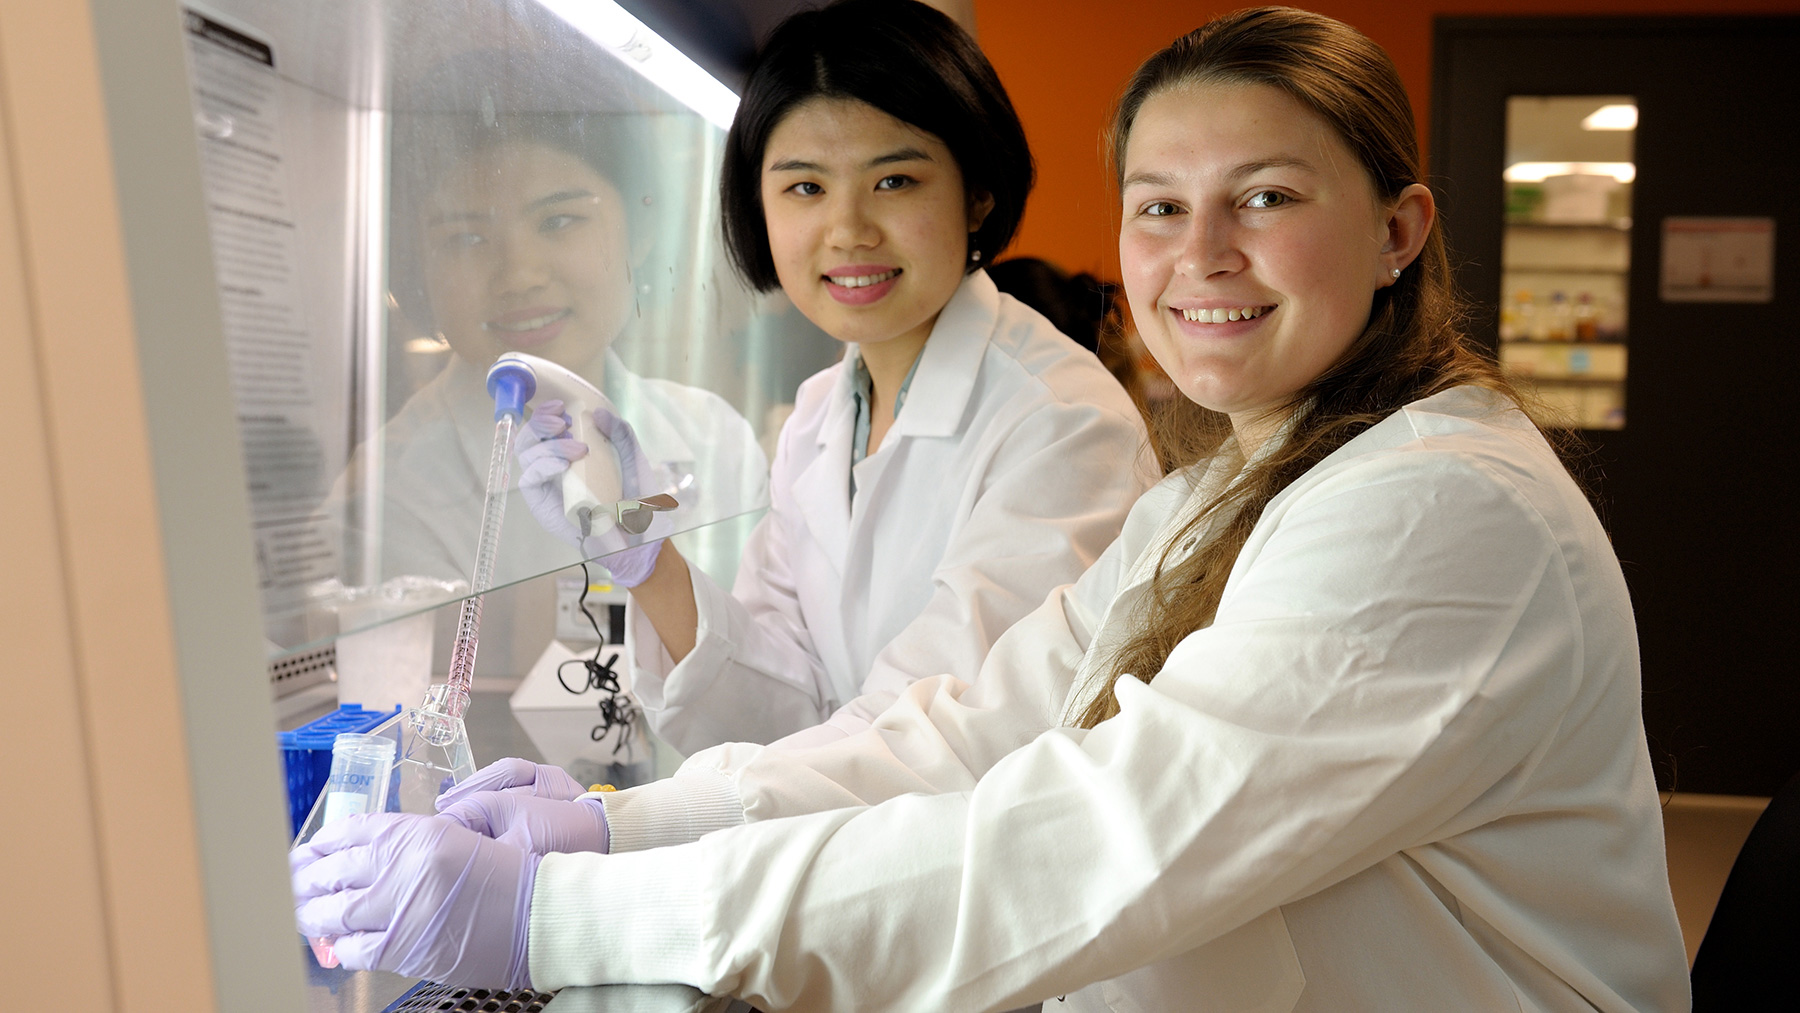 Cheri Fang, left, a first-year Ph.D. student in bioengineering, served as a graduate student mentor for Amanda Craine, a junior in biomedical engineering at Pennsylvania State University